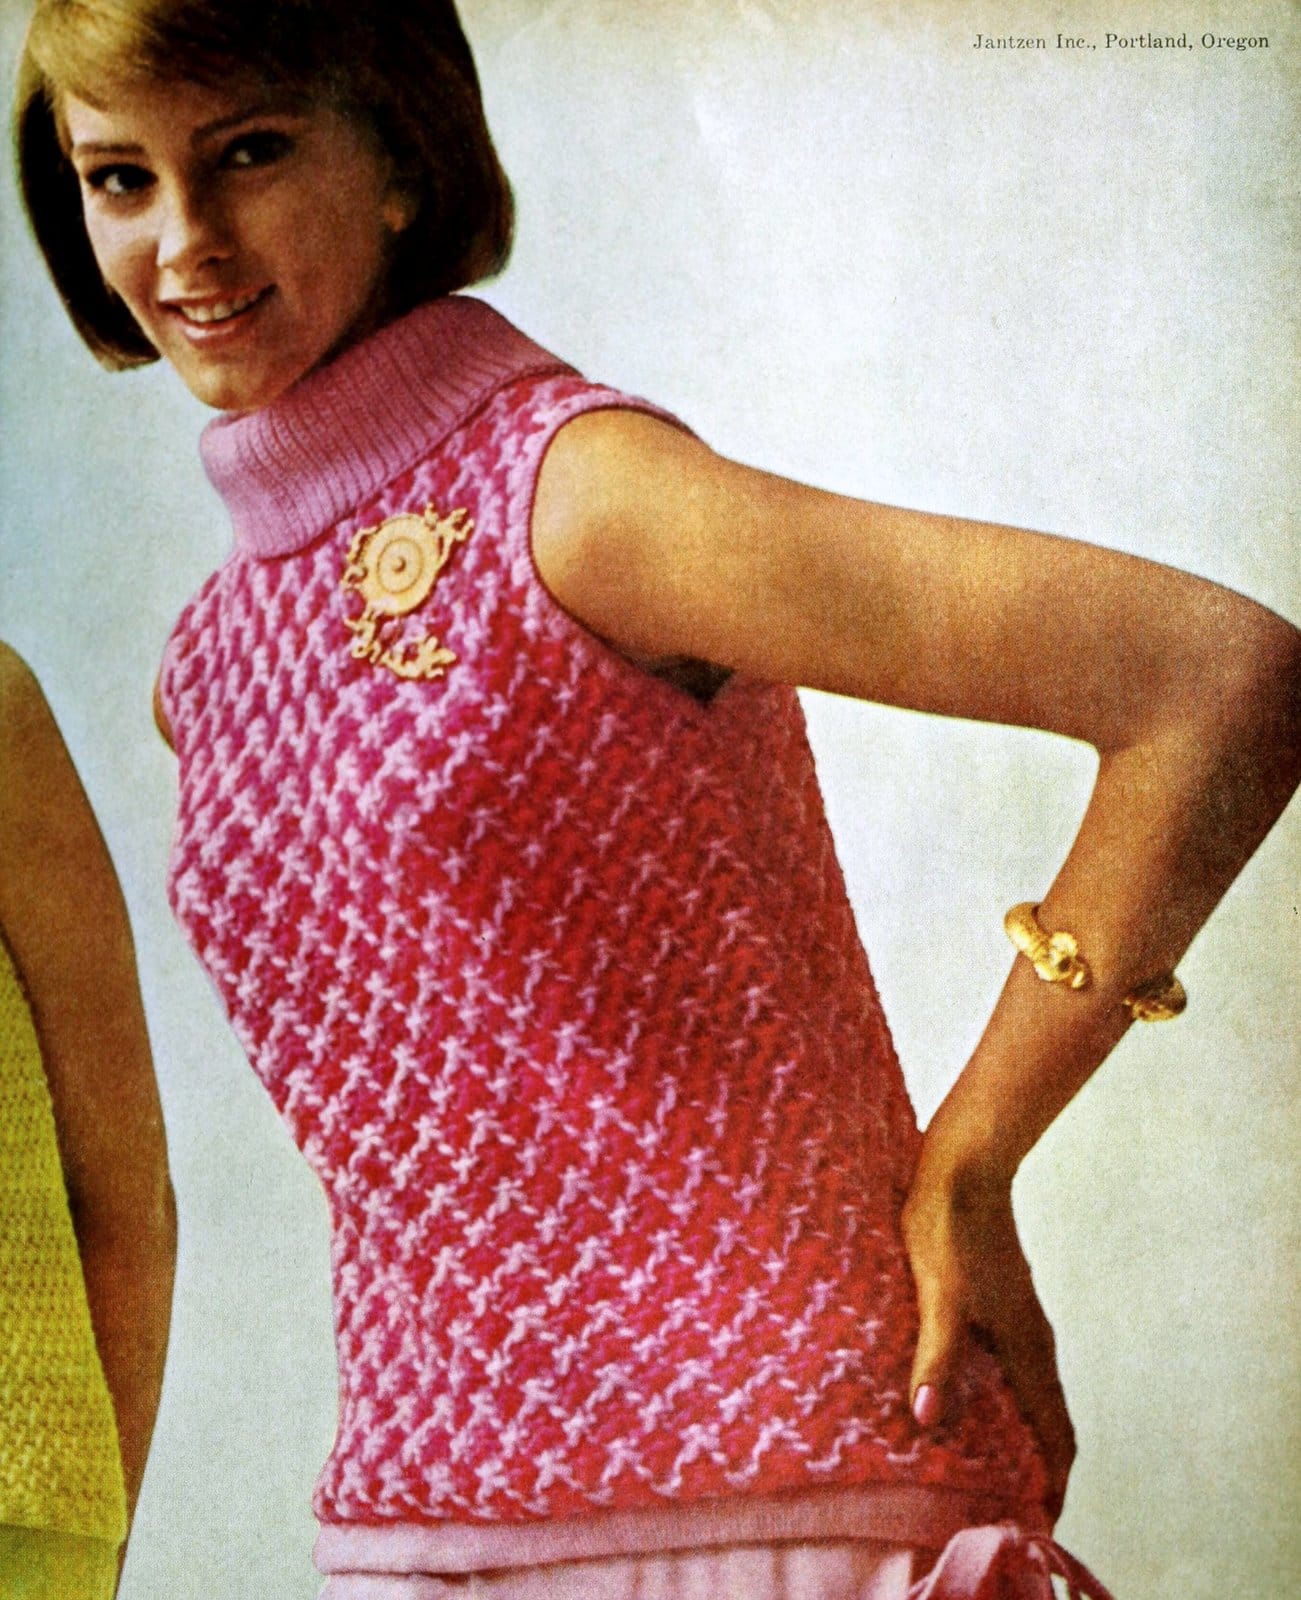 Vintage bright sweater fashions from Jantzen in 1964 (2)